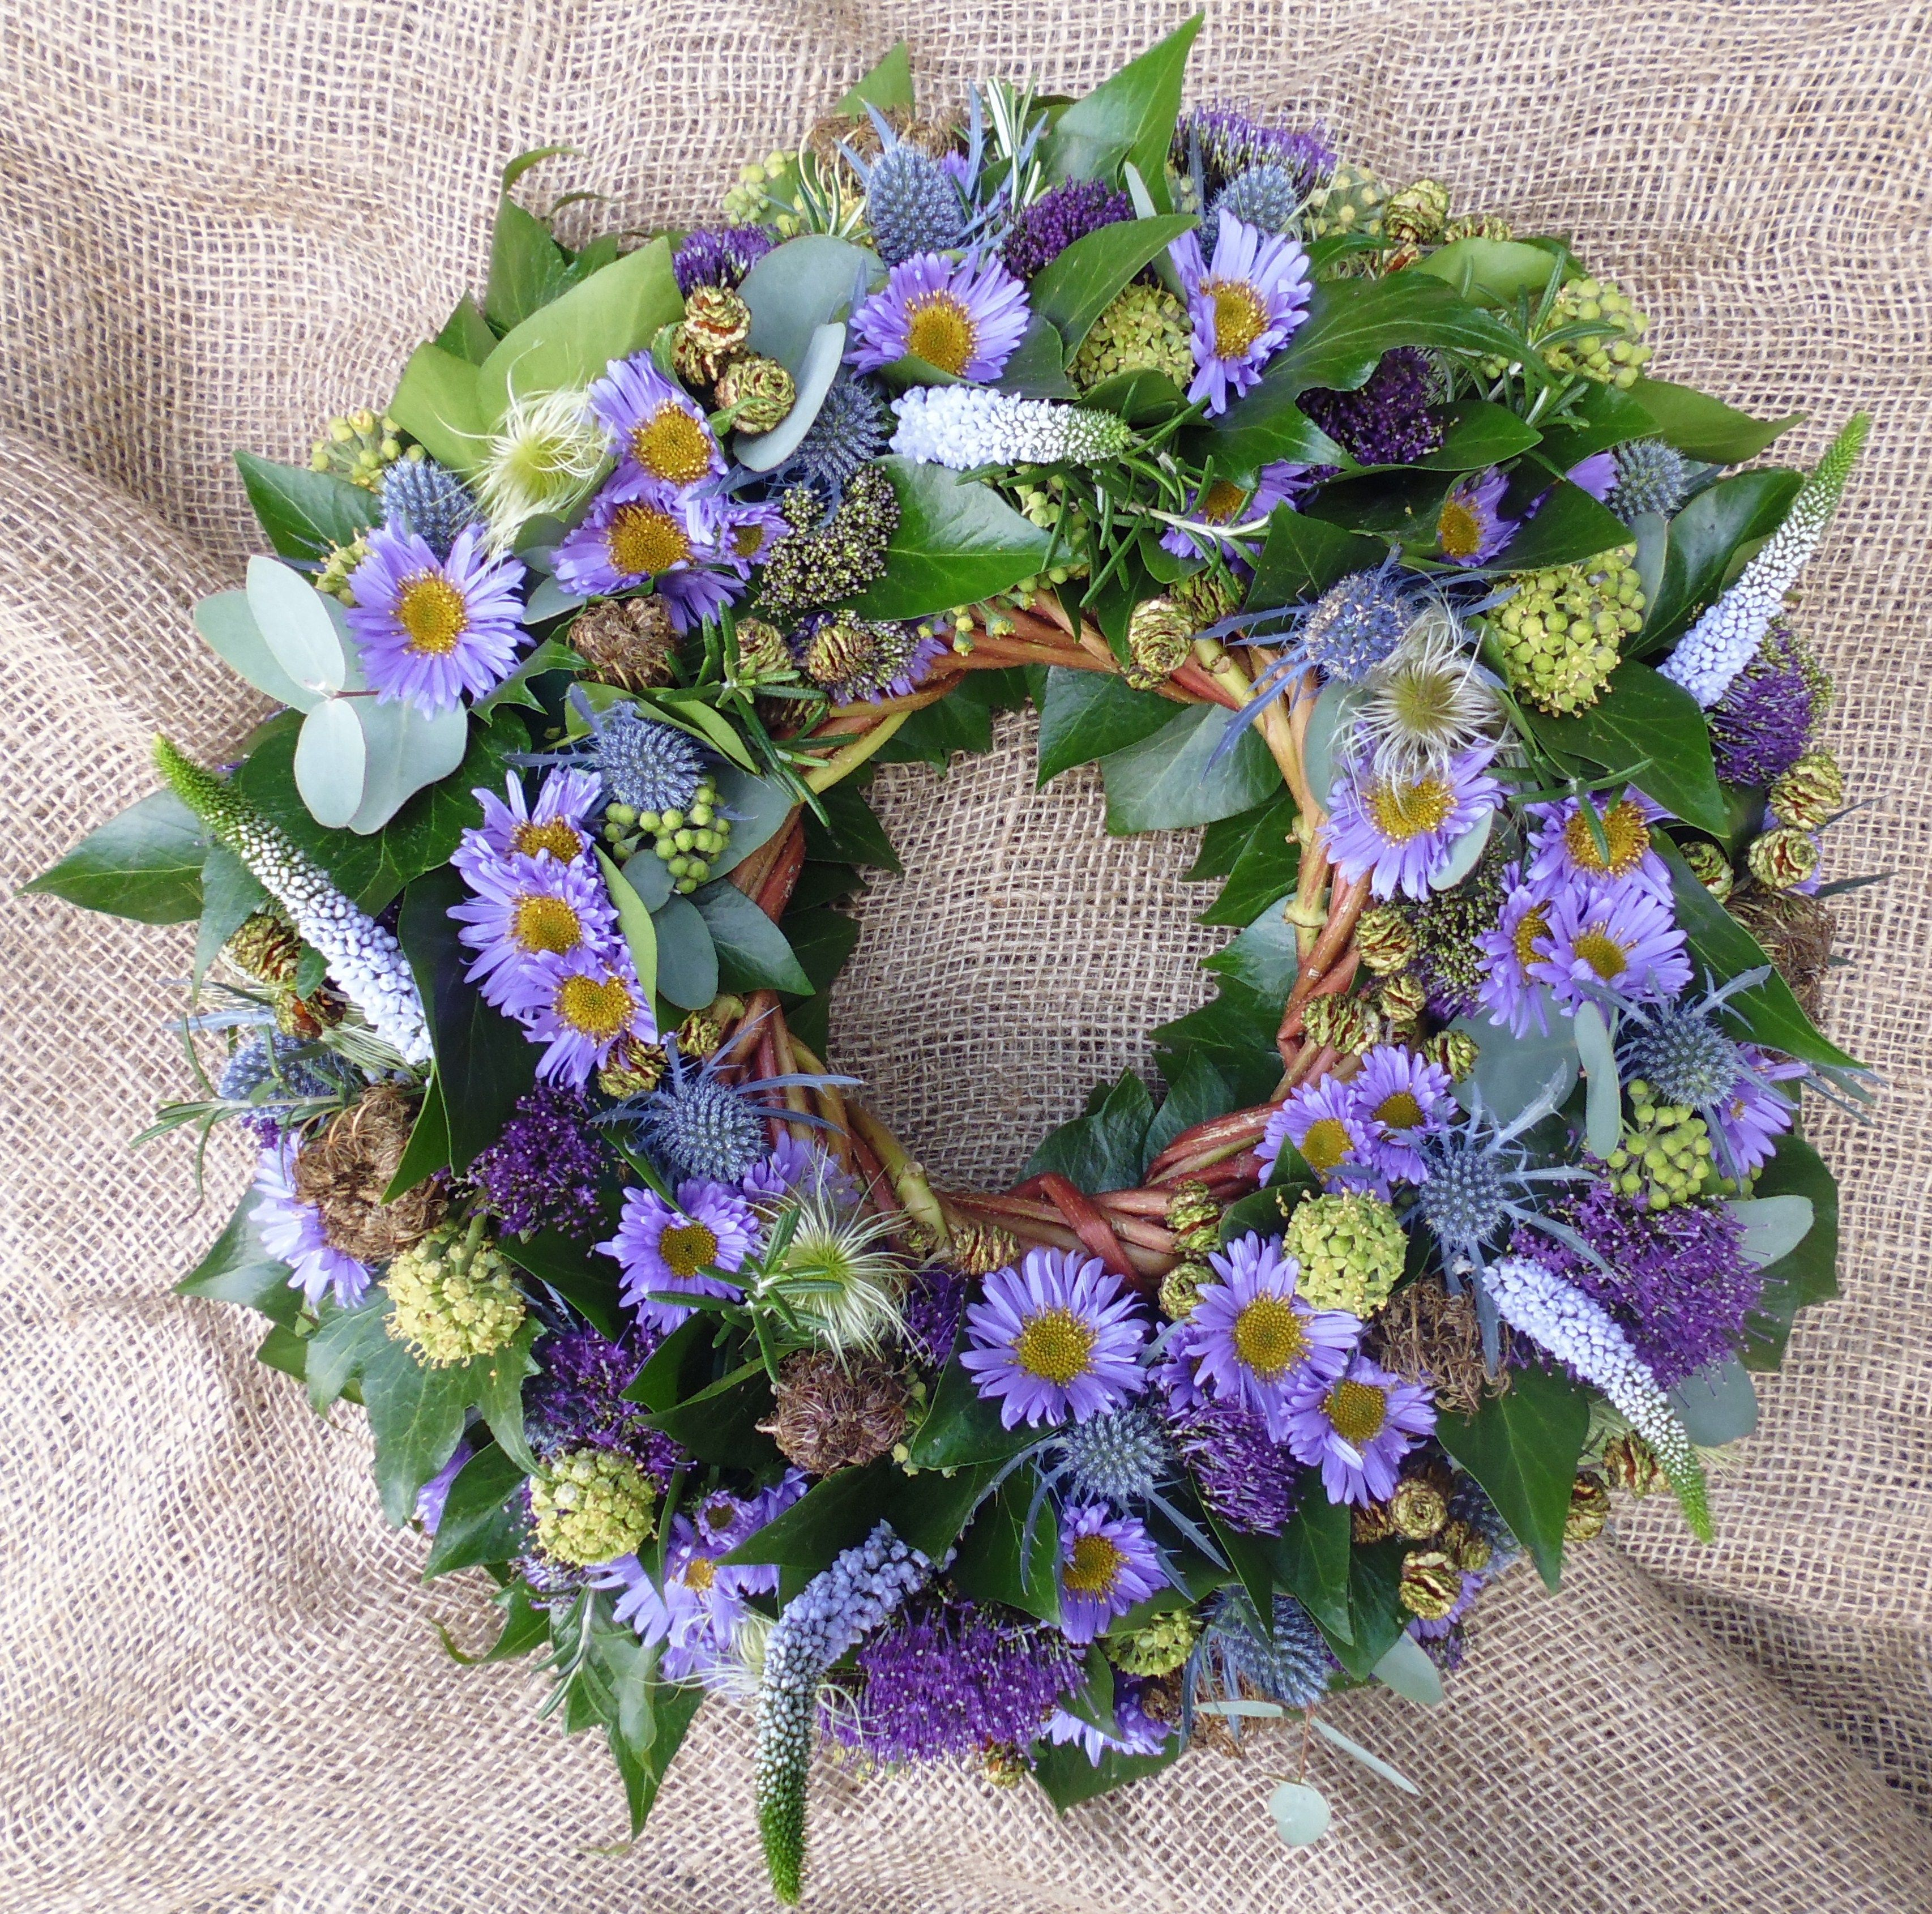 Flora button natural funeral flowers leicestershire flowers flora button natural funeral flowers leicestershire izmirmasajfo Choice Image